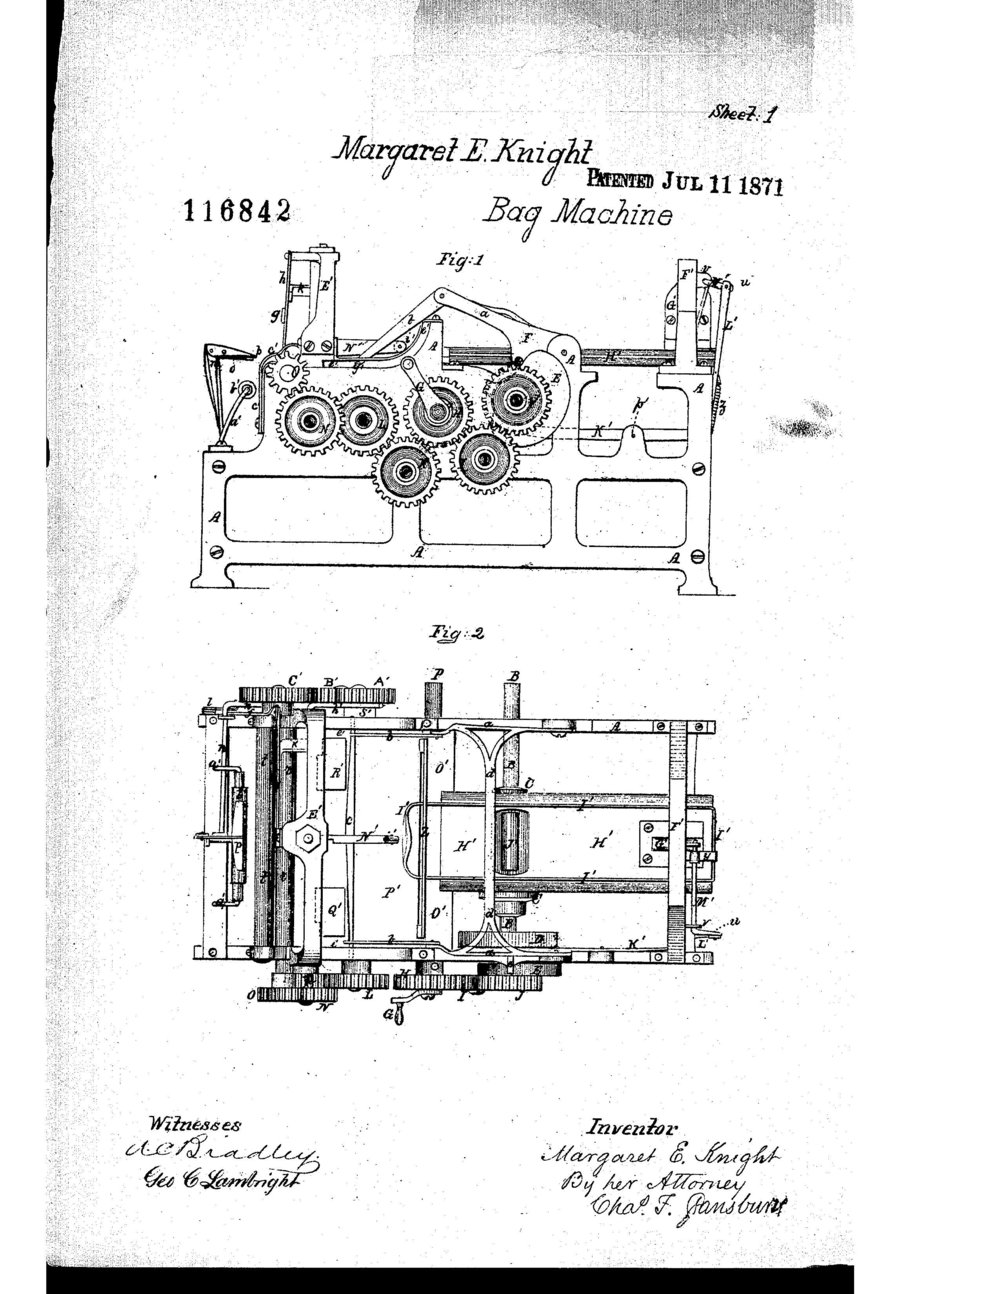 A drawing of Margaret Knight's bag machine.  Image credit: United States Patent and Trademark Office, Public Domain